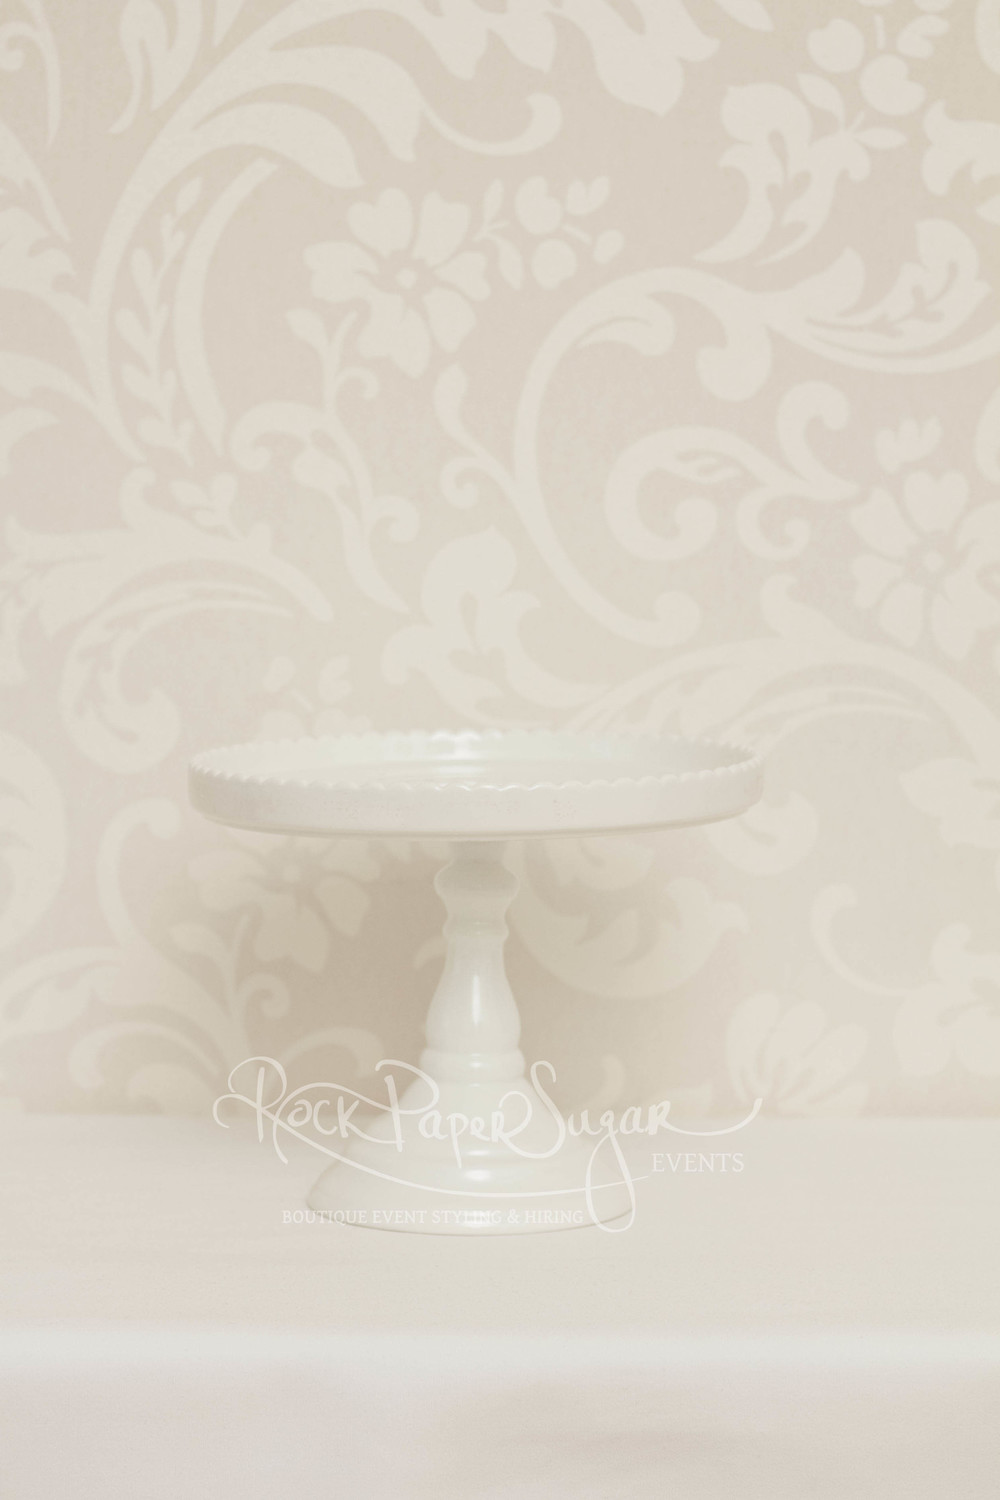 Rock Paper Sugar Events Cake Stands 002.jpg